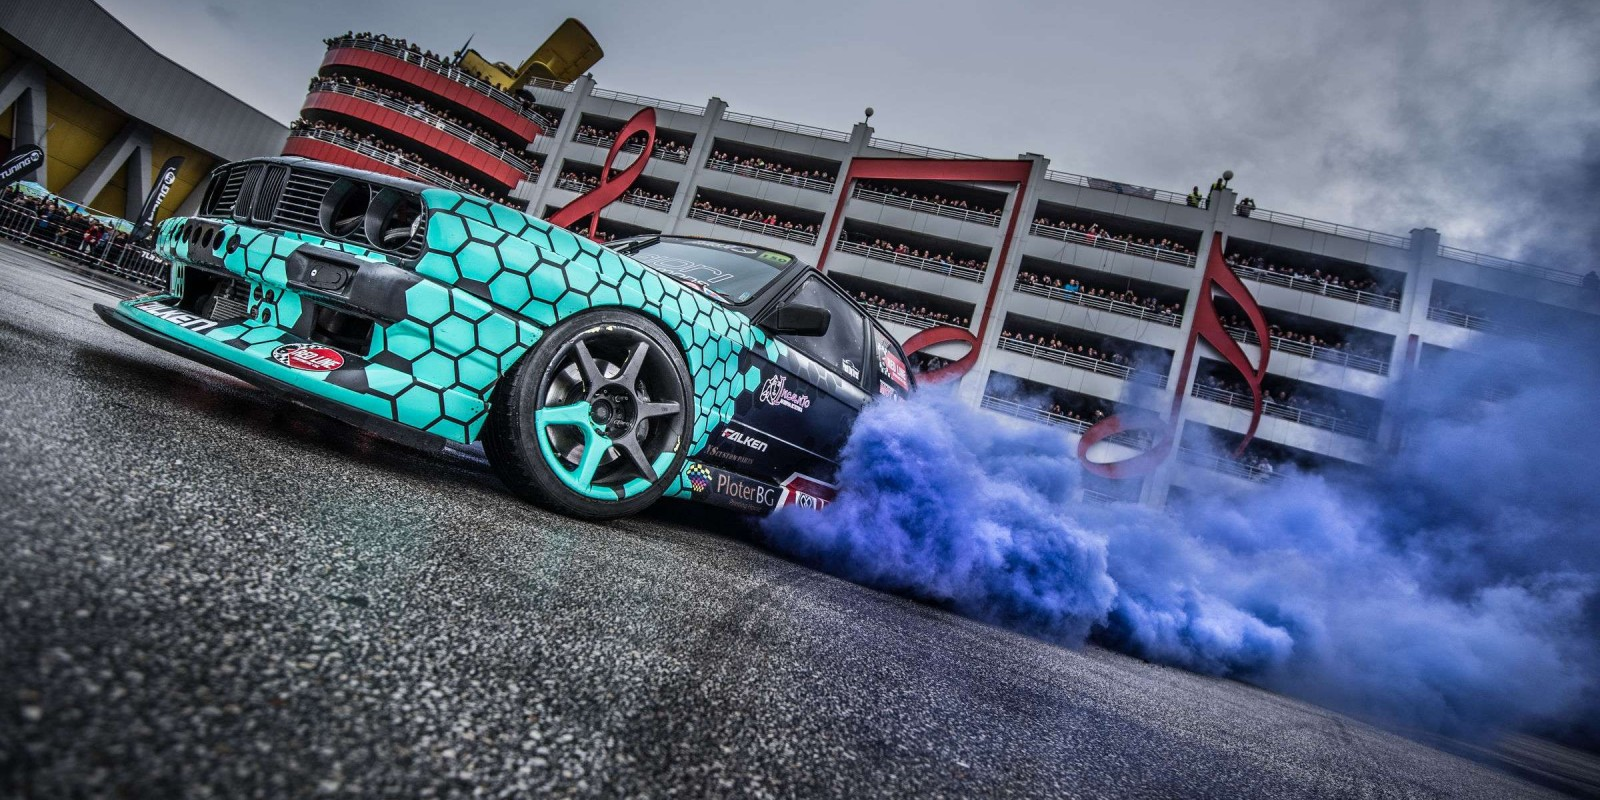 The BMW fest in Plovdiv, Bulgaria was the biggest auto gathering in the country and had a awesome drift demo with ME athlete Alex Yazov.